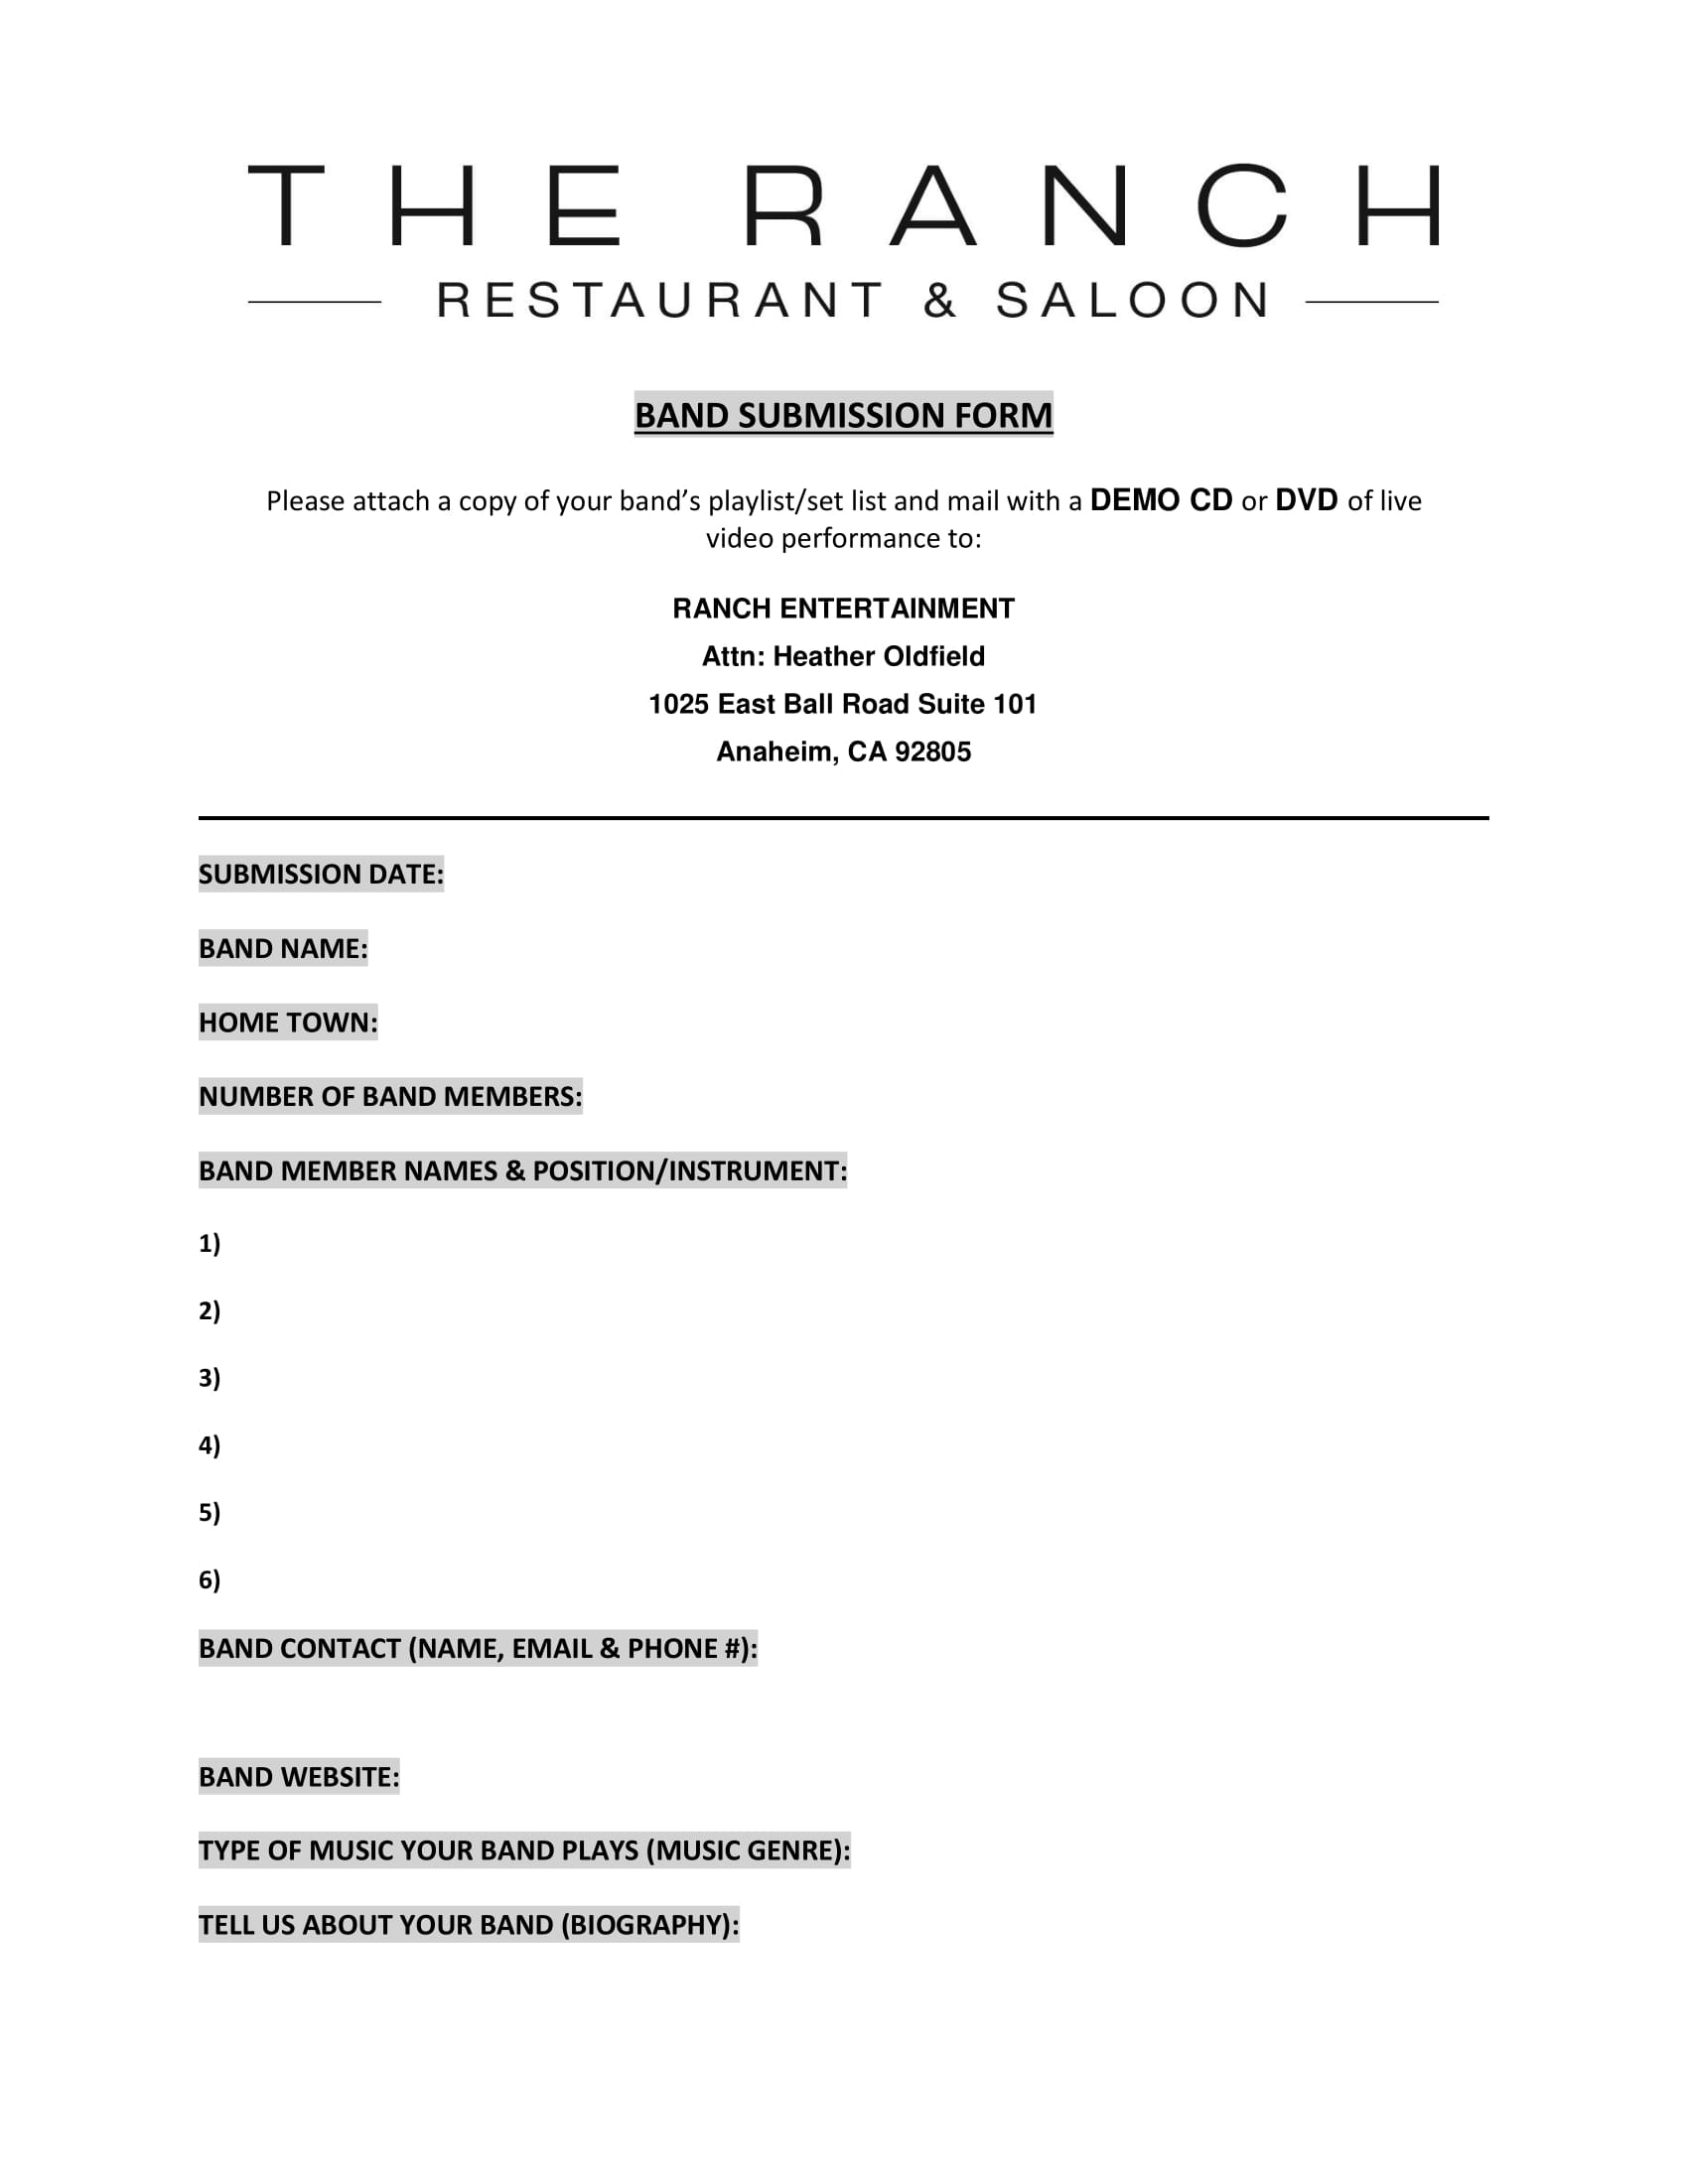 restaurant band inquiry submission form 1